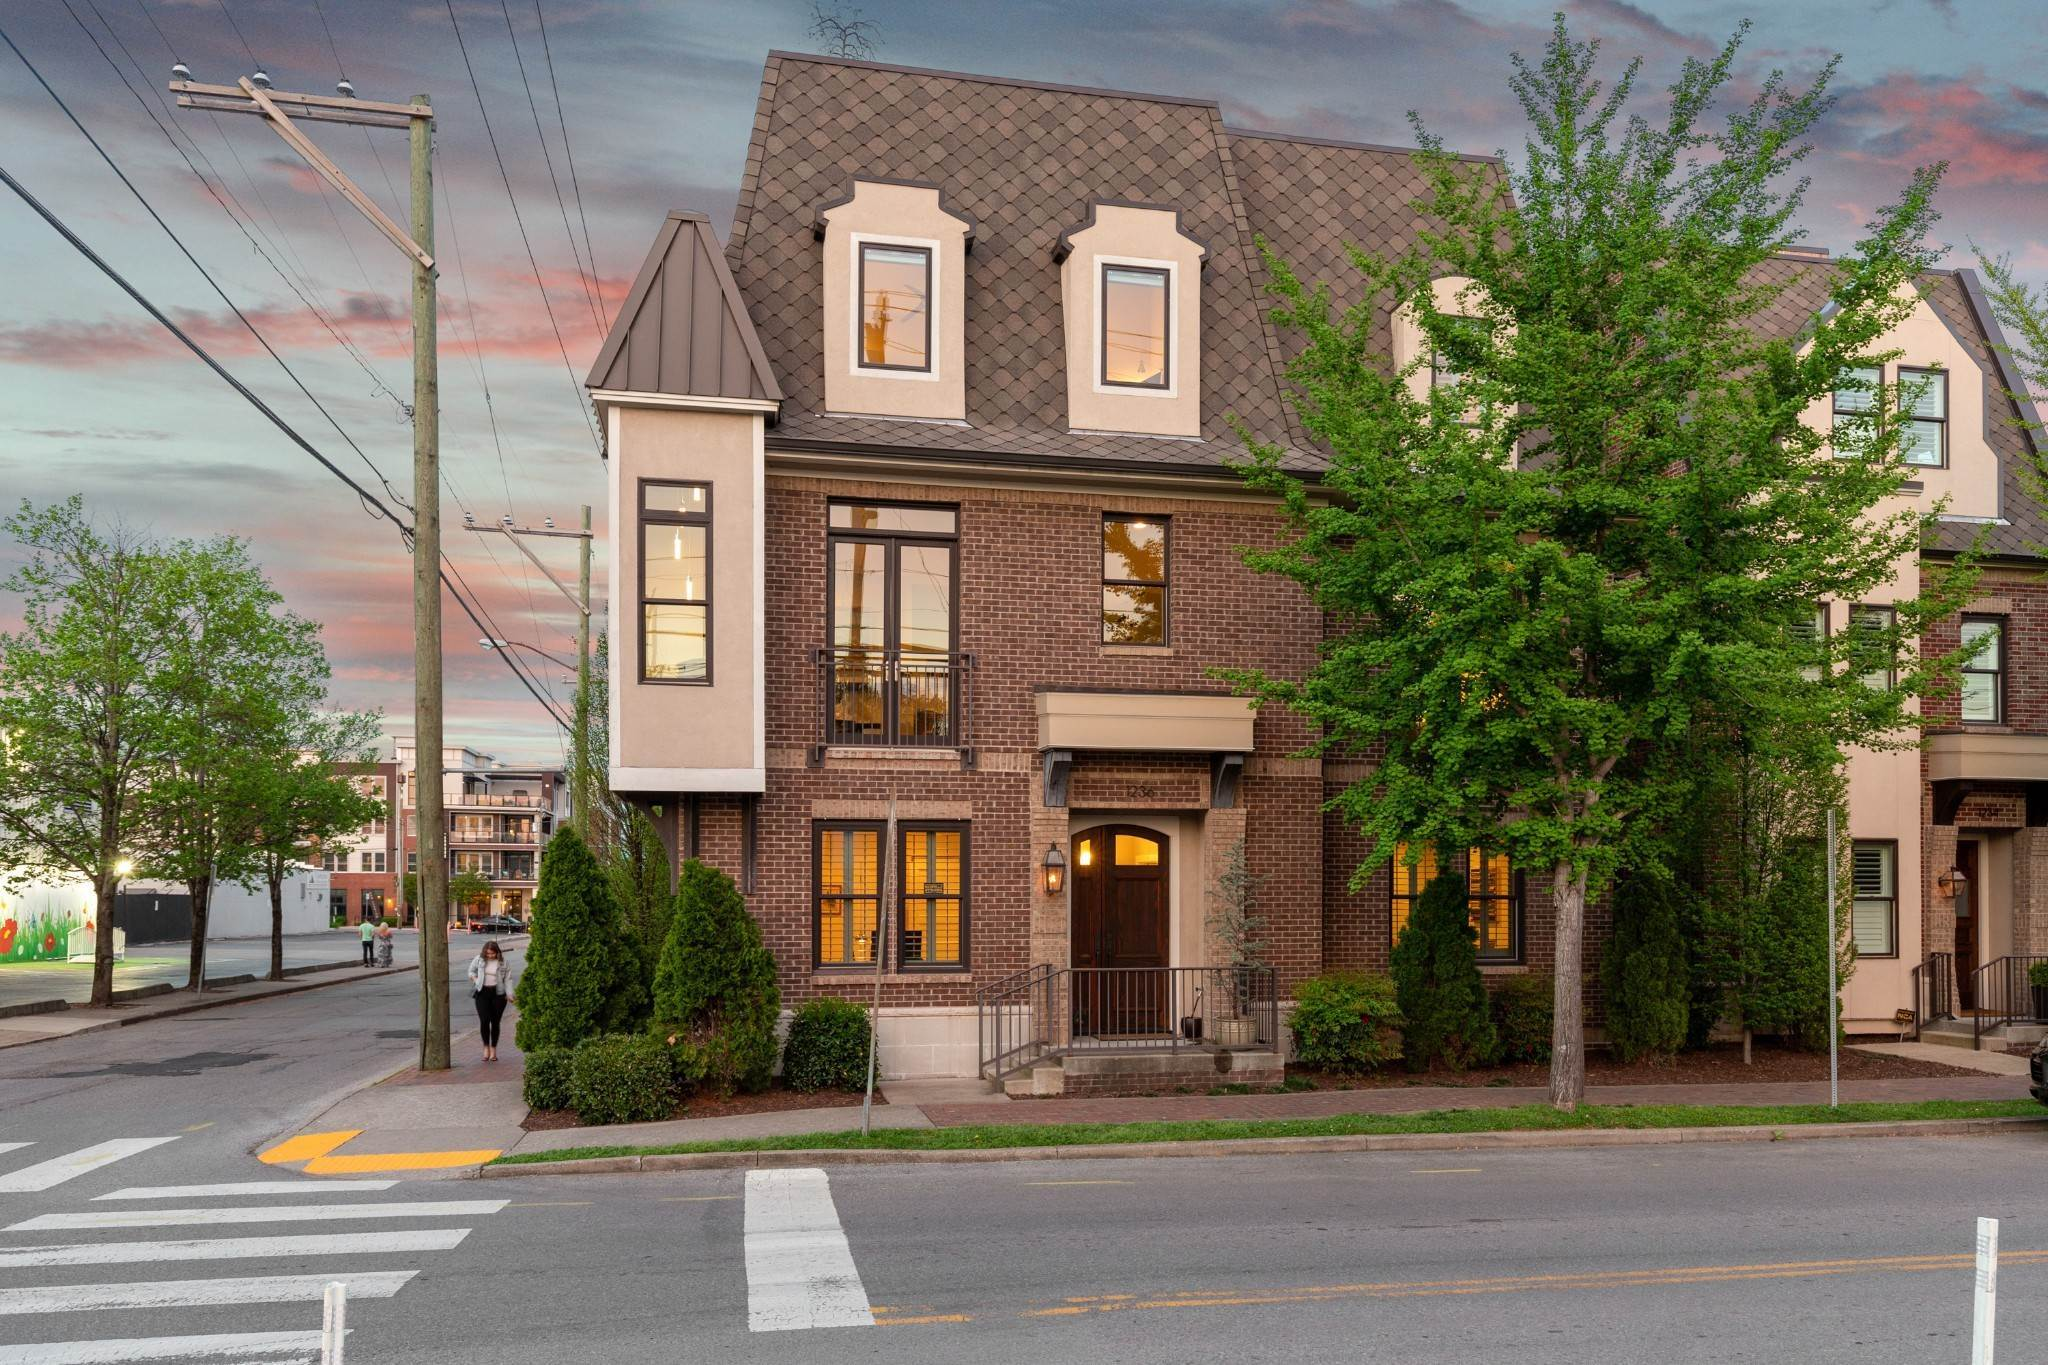 townhouses for Sale at 1236 5th Ave, N Nashville, Tennessee 37208 United States